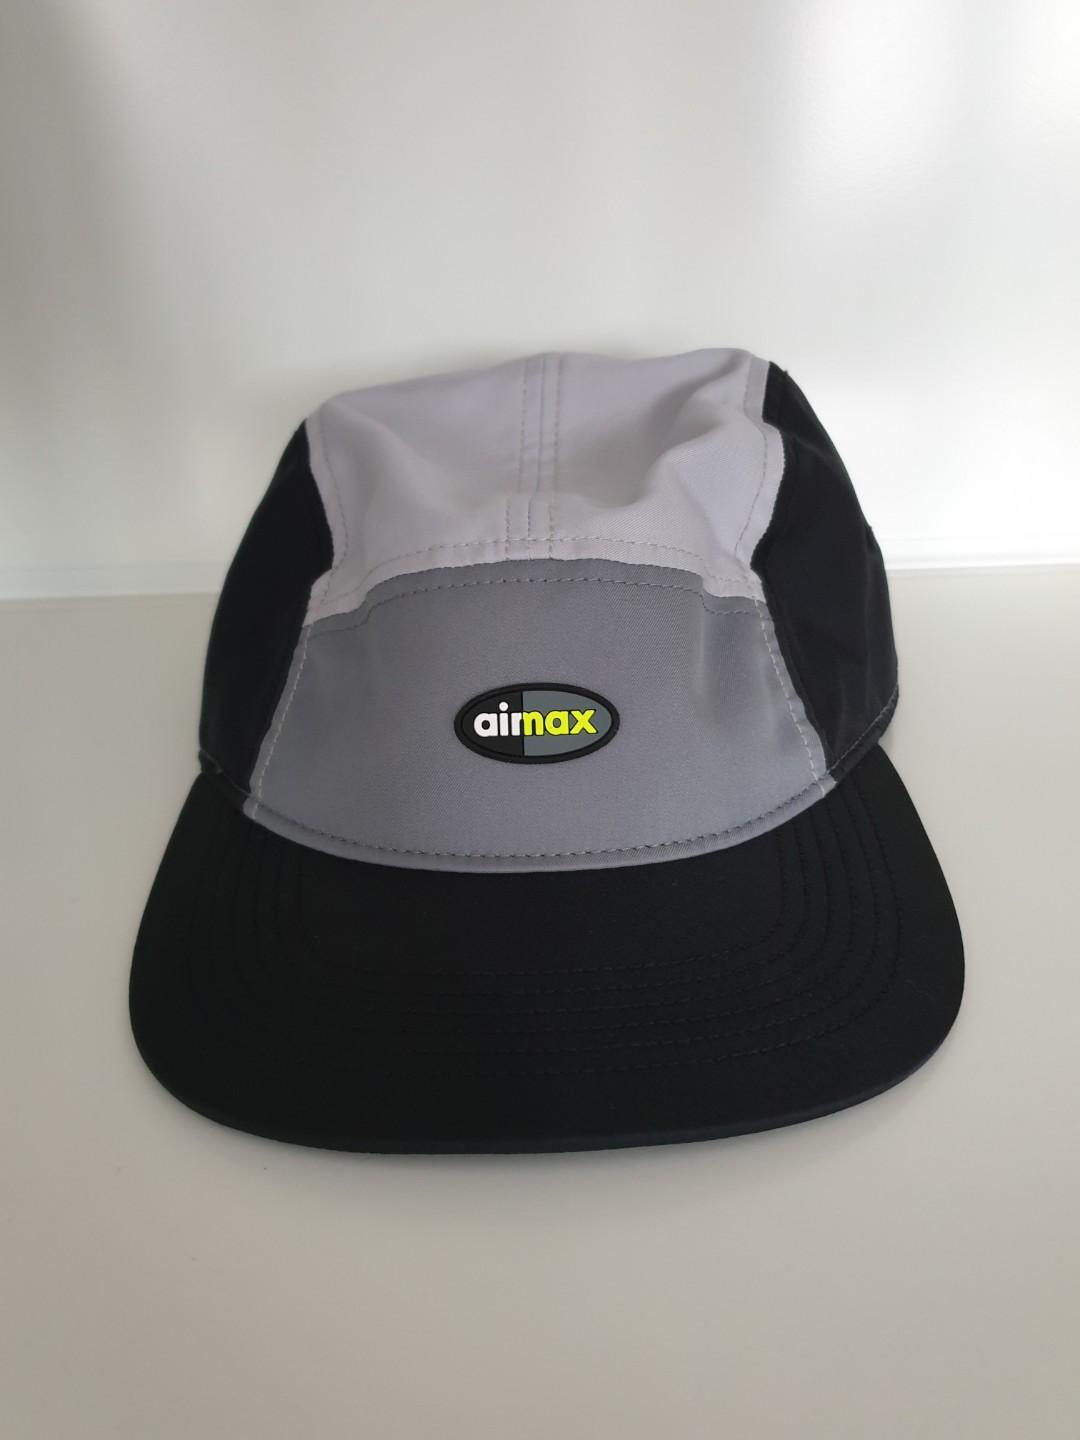 polla darse cuenta Consejos  Nike Air Max 5 Panel Running Cap, Men's Fashion, Accessories, Caps & Hats  on Carousell